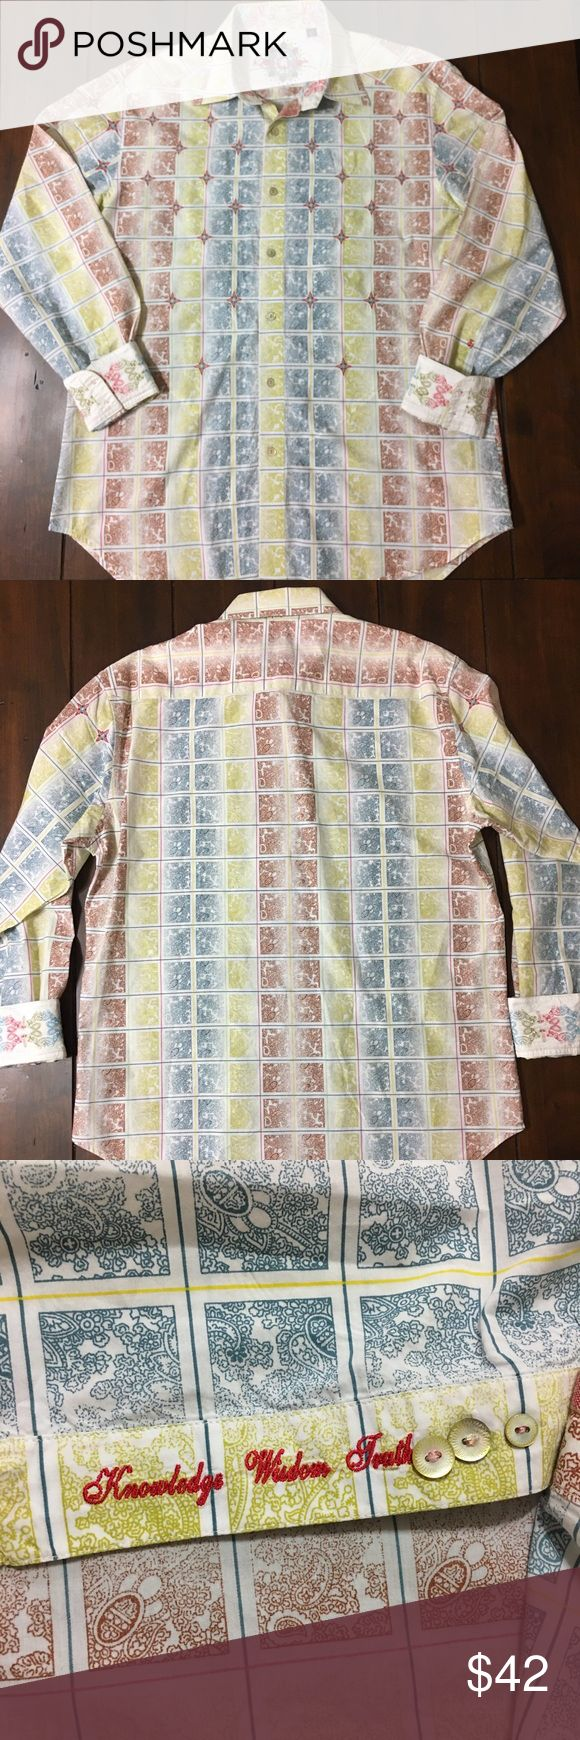 """Robert Graham Button Down Long Sleeve Shirt Sz L Robert Graham long sleeve button down shirt. Shirt has Embroidered Paisley on sleeve cuffs. Pattern of shirt is a striped Paisley print. No stains, holes or pilling. Chest 23"""", length 29"""", sleeve length 25""""  All measurements taken laying flat. Robert Graham Shirts Casual Button Down Shirts"""